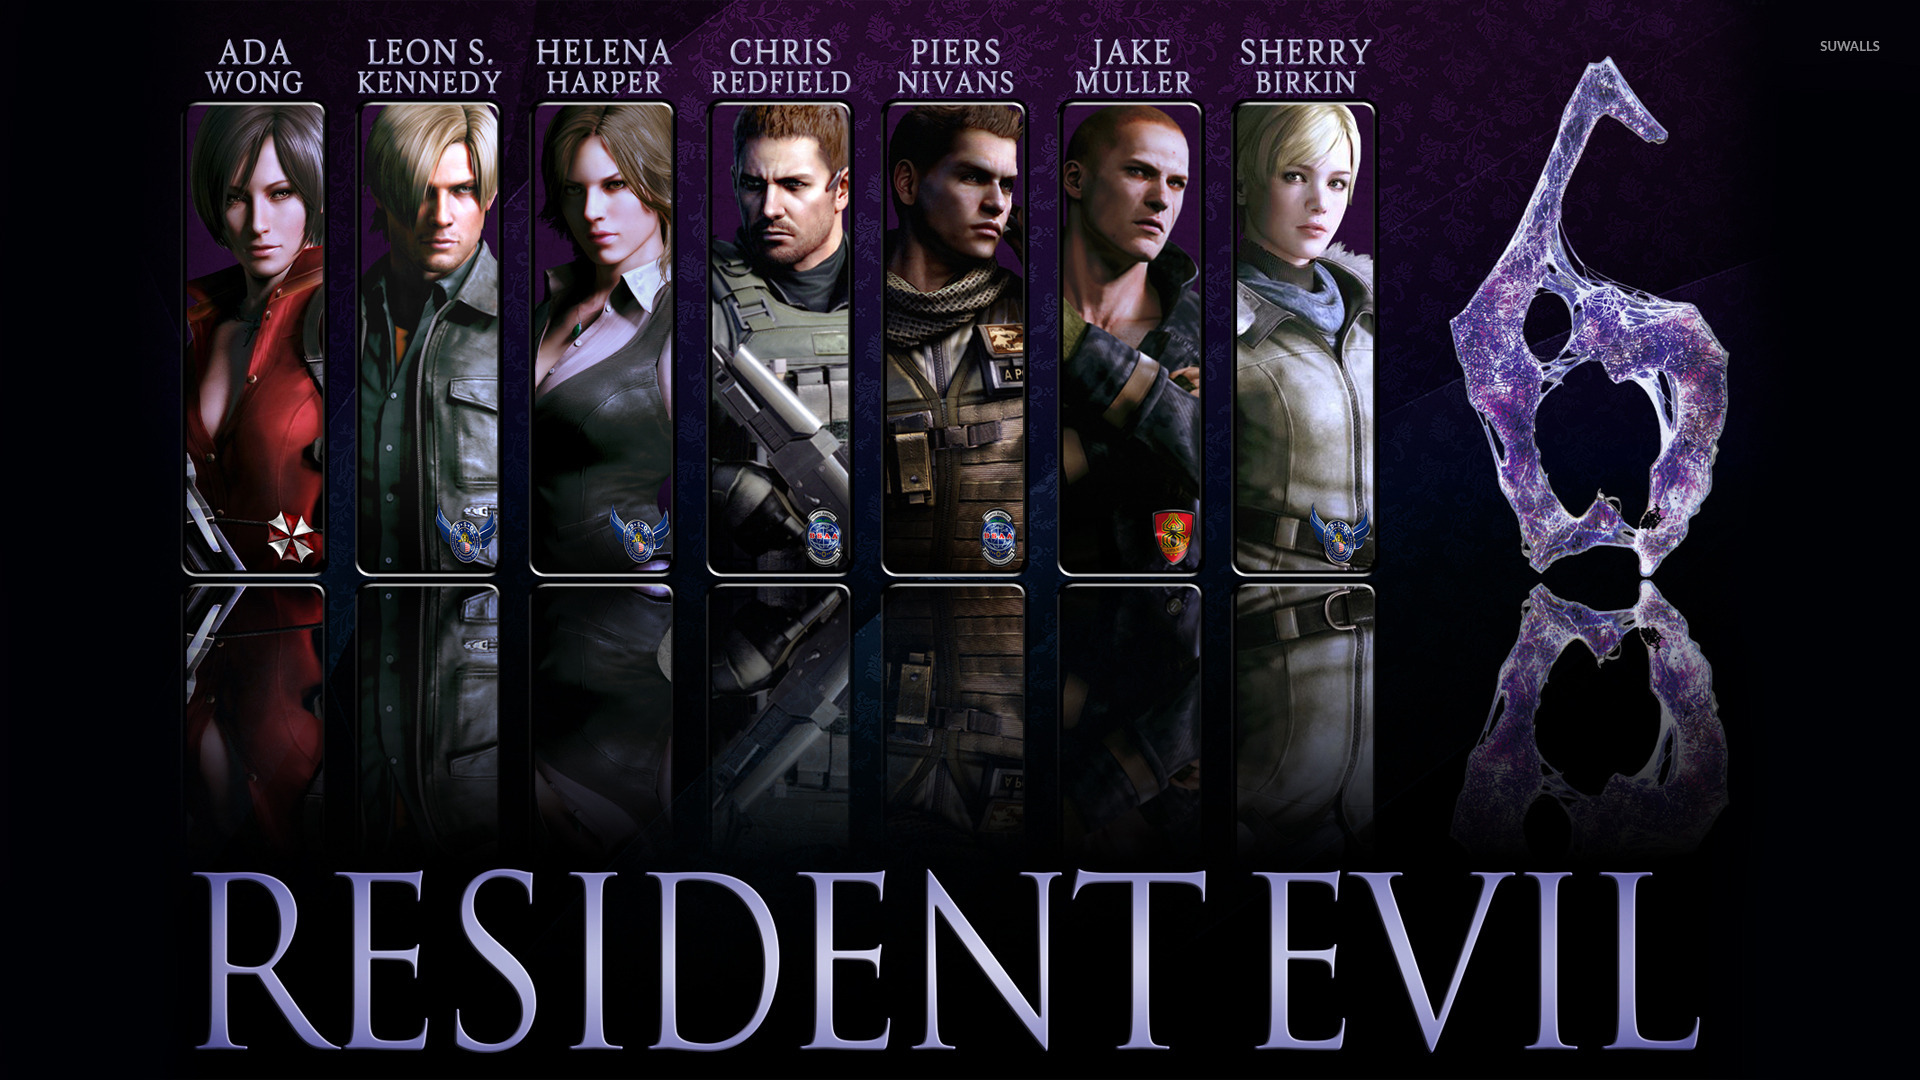 Resident Evil 6 2 Wallpaper Game Wallpapers 20865